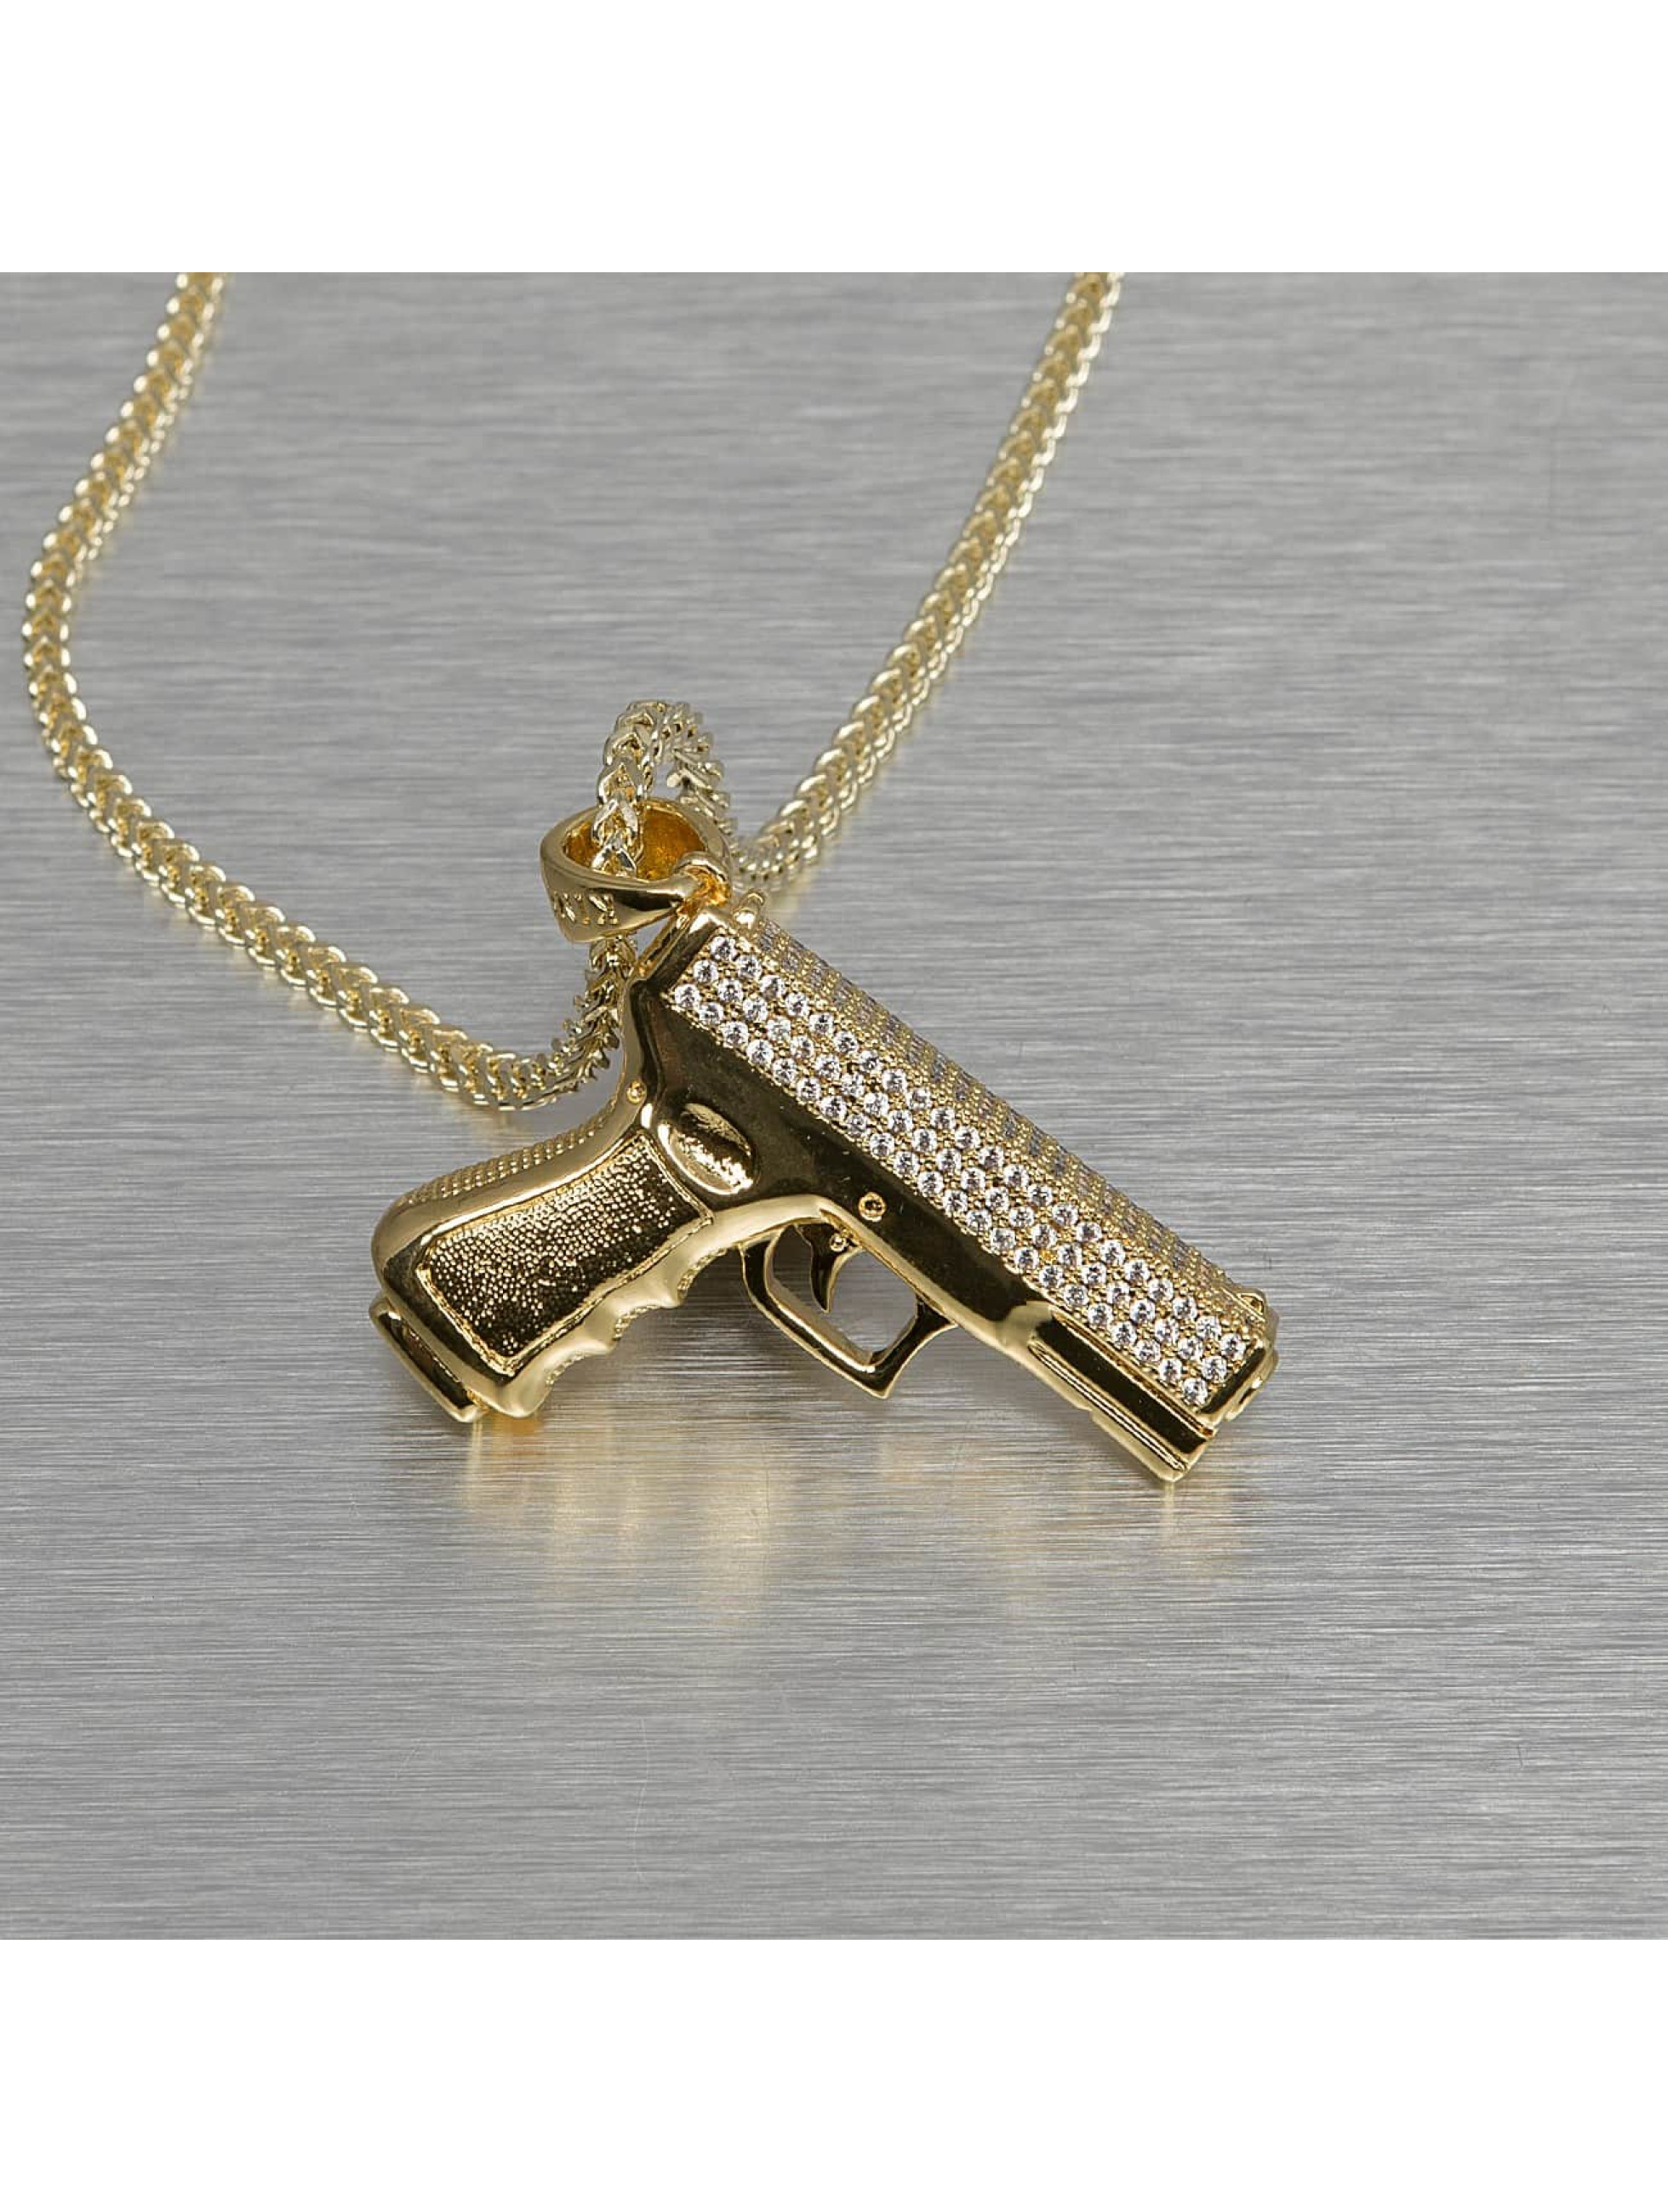 KING ICE Kette Handgun goldfarben